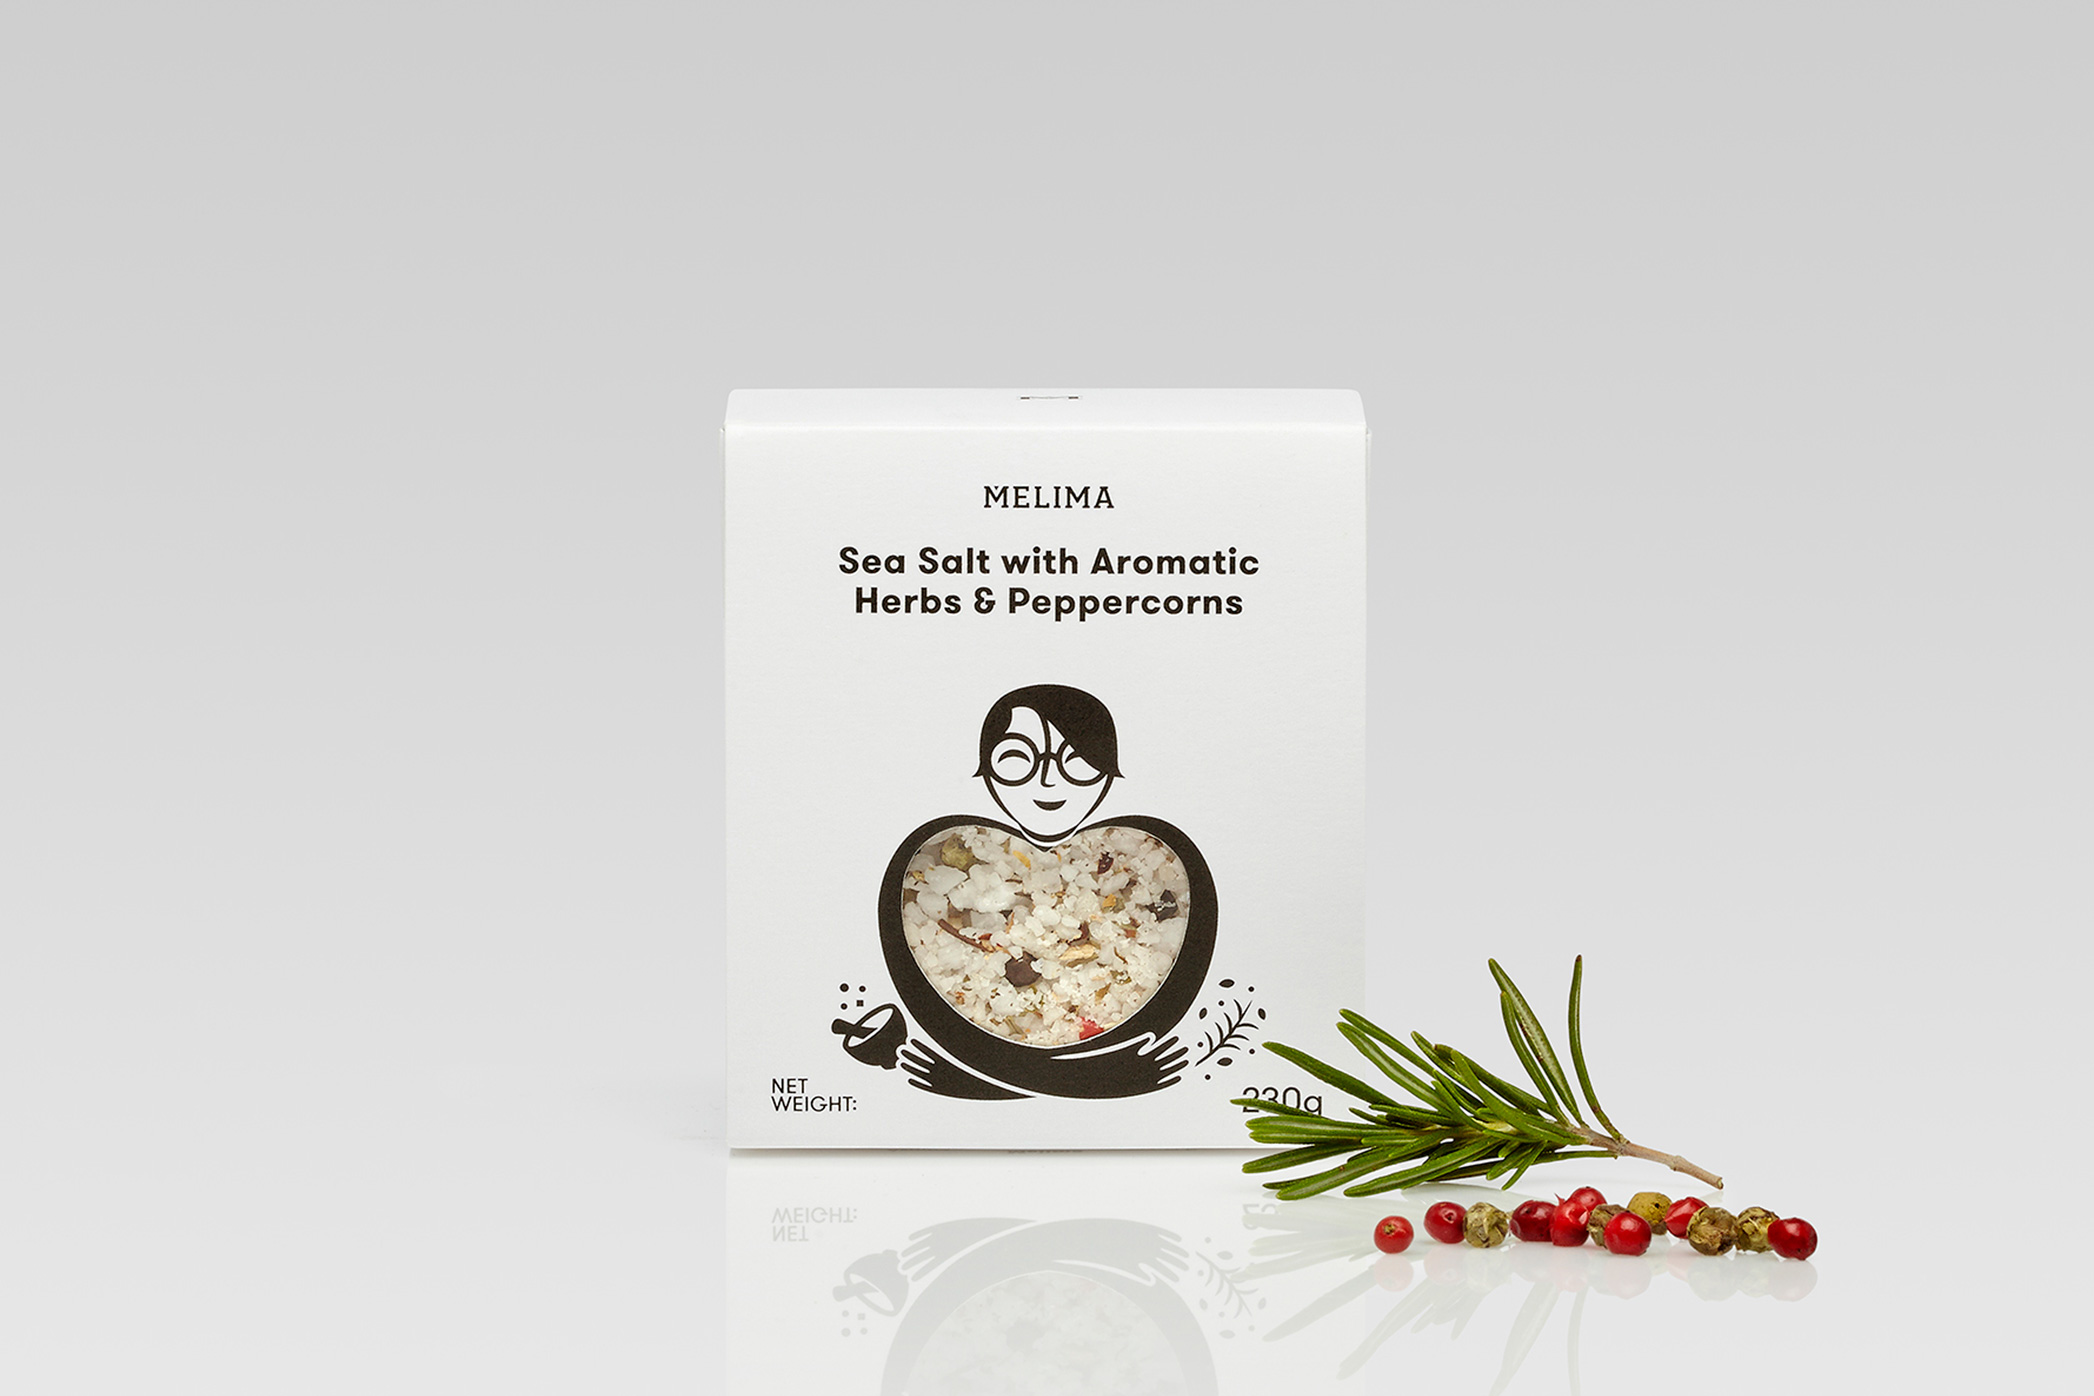 Sea Salt with Aromatic Herbs & Peppercorns